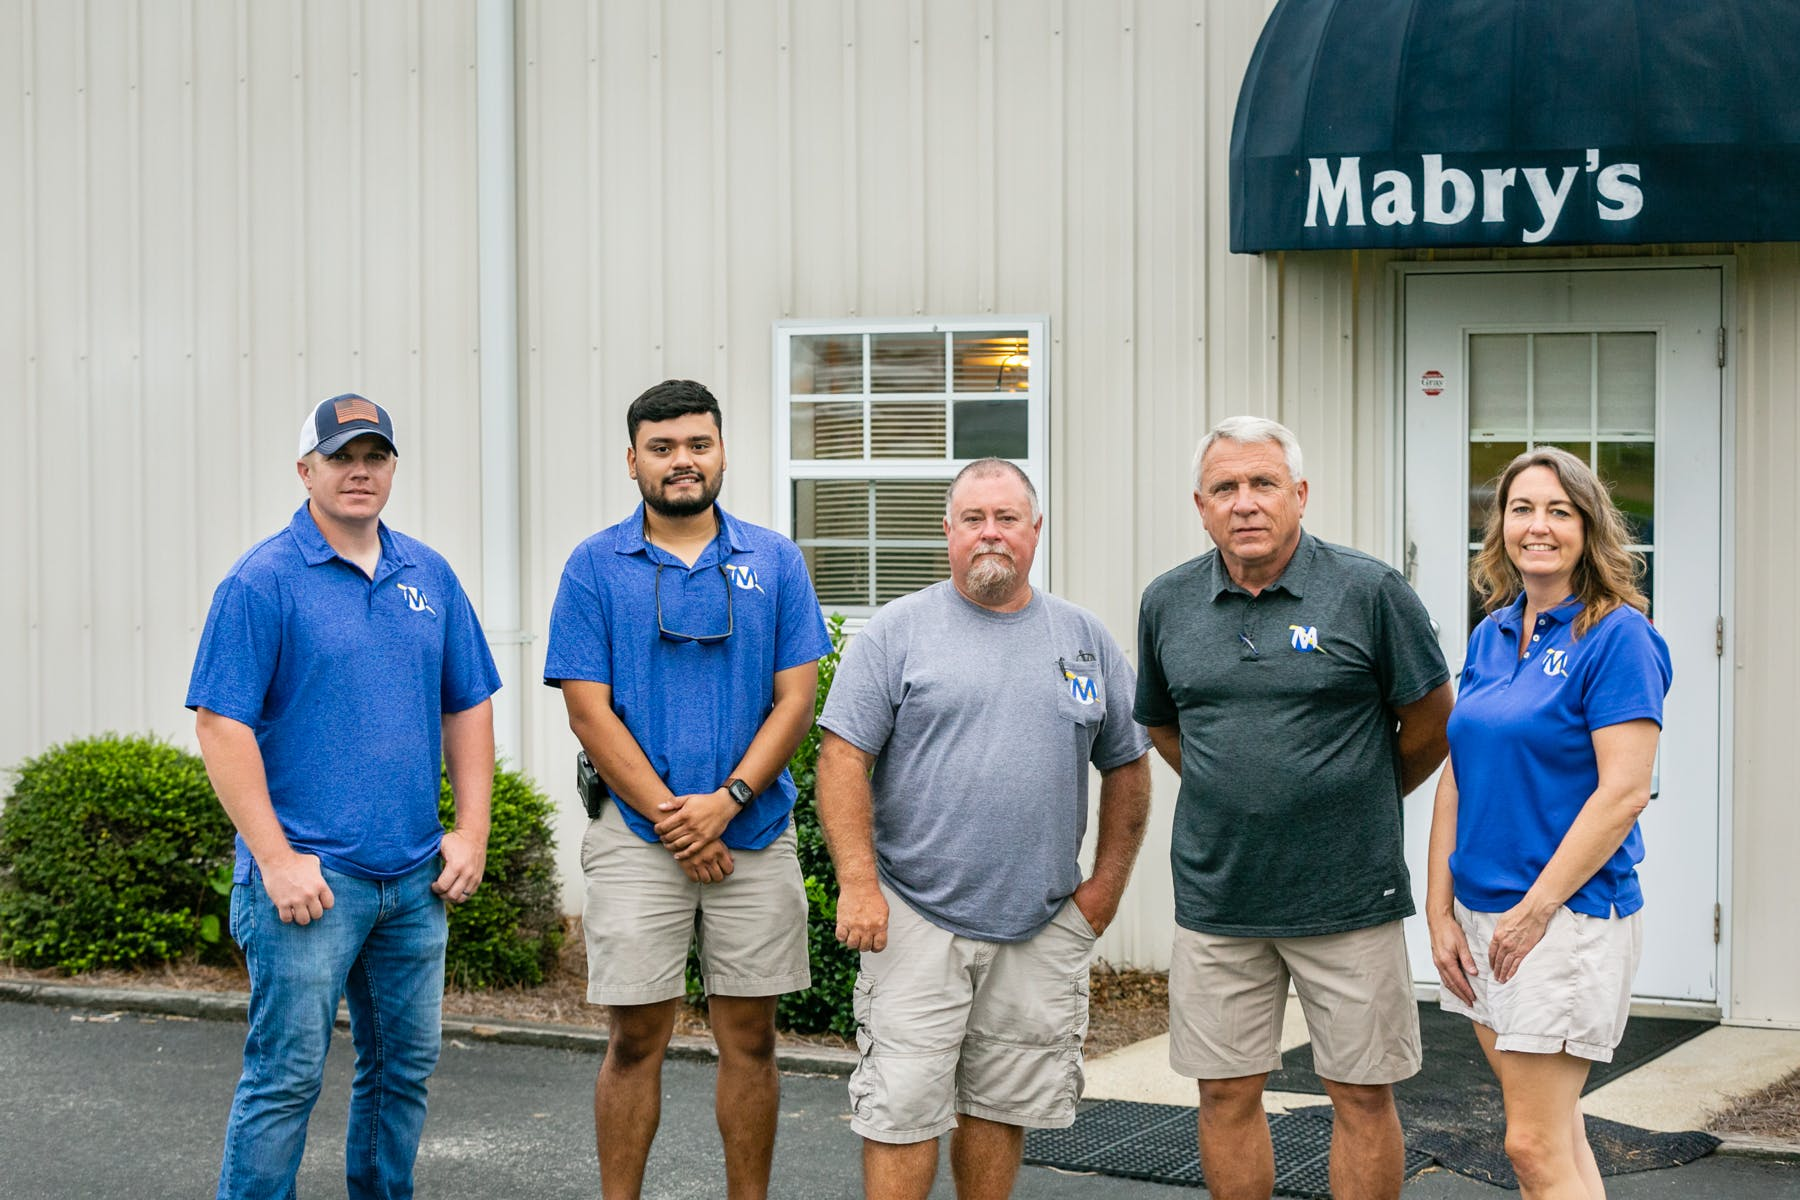 Mabry'c Electrical Inc leadership team